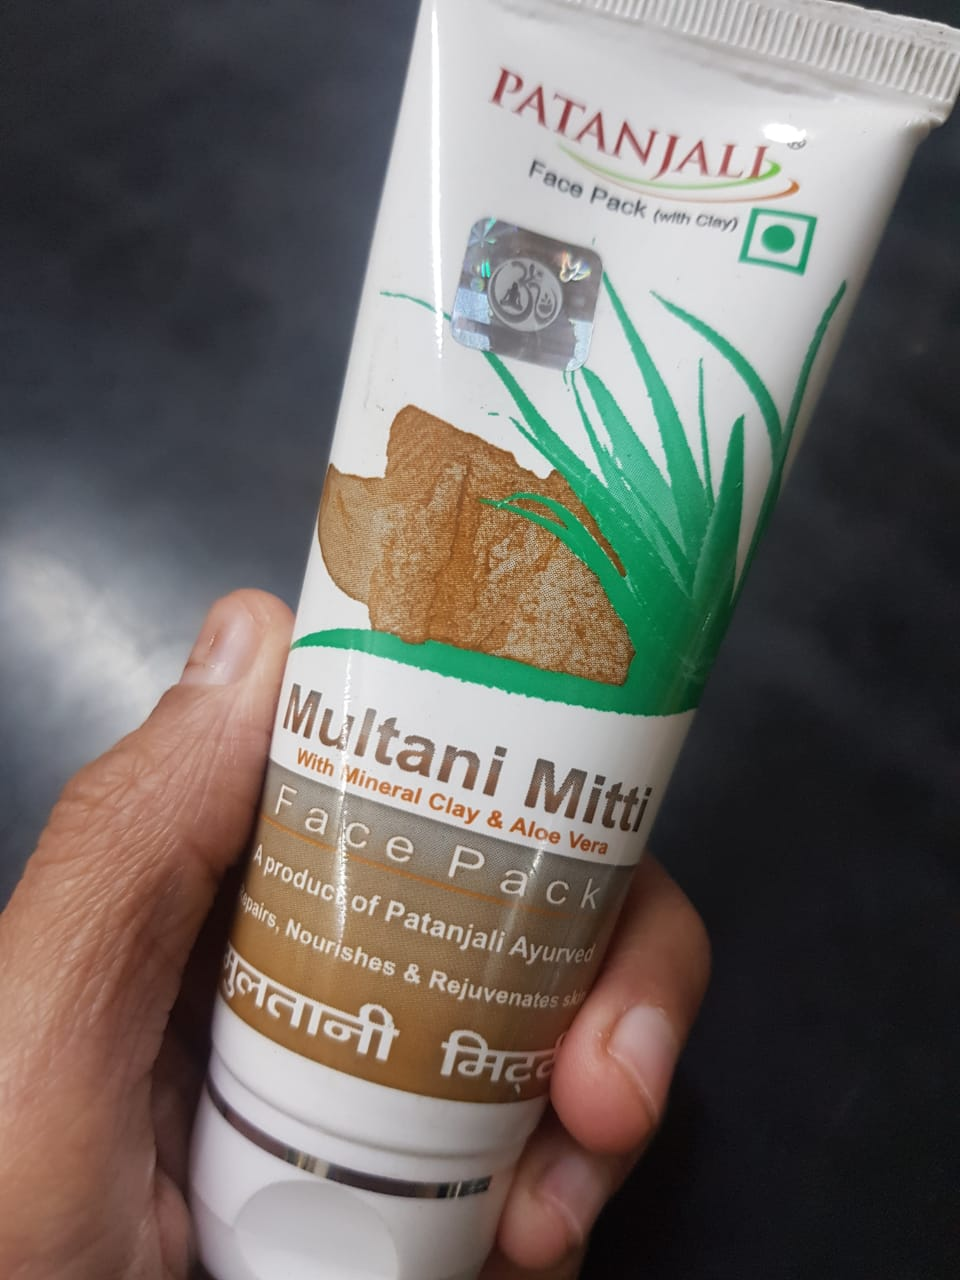 Patanjali Multani Mitti Face Pack-Awesome face pack-By poonam_kakkar